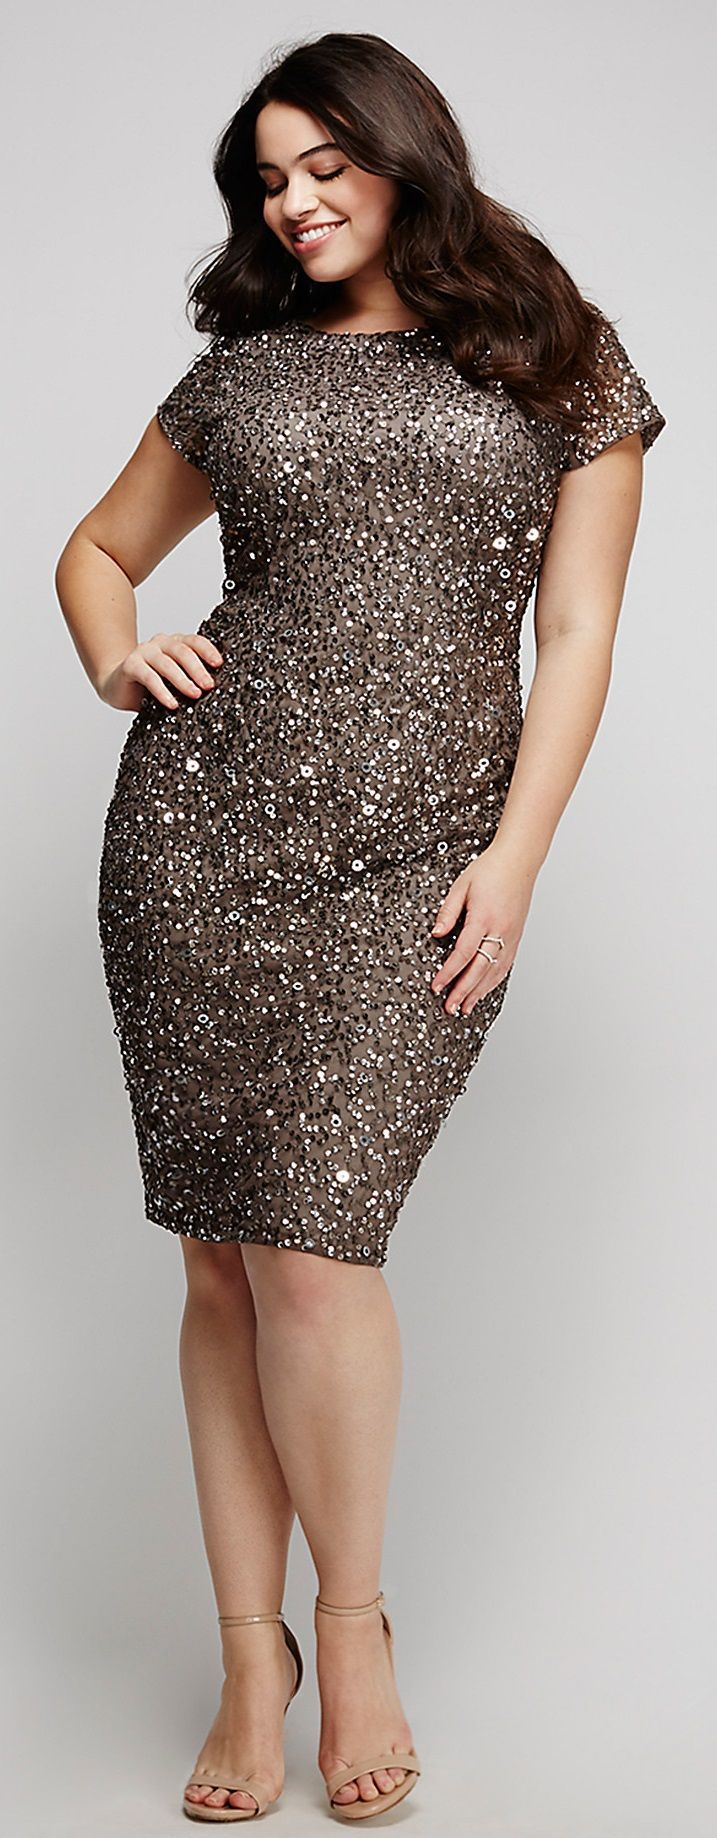 Plus Size Sequin Dress  Check out our collection of Plus size Dresses http://plussizeshop.org/index.php/product-category/dresses/